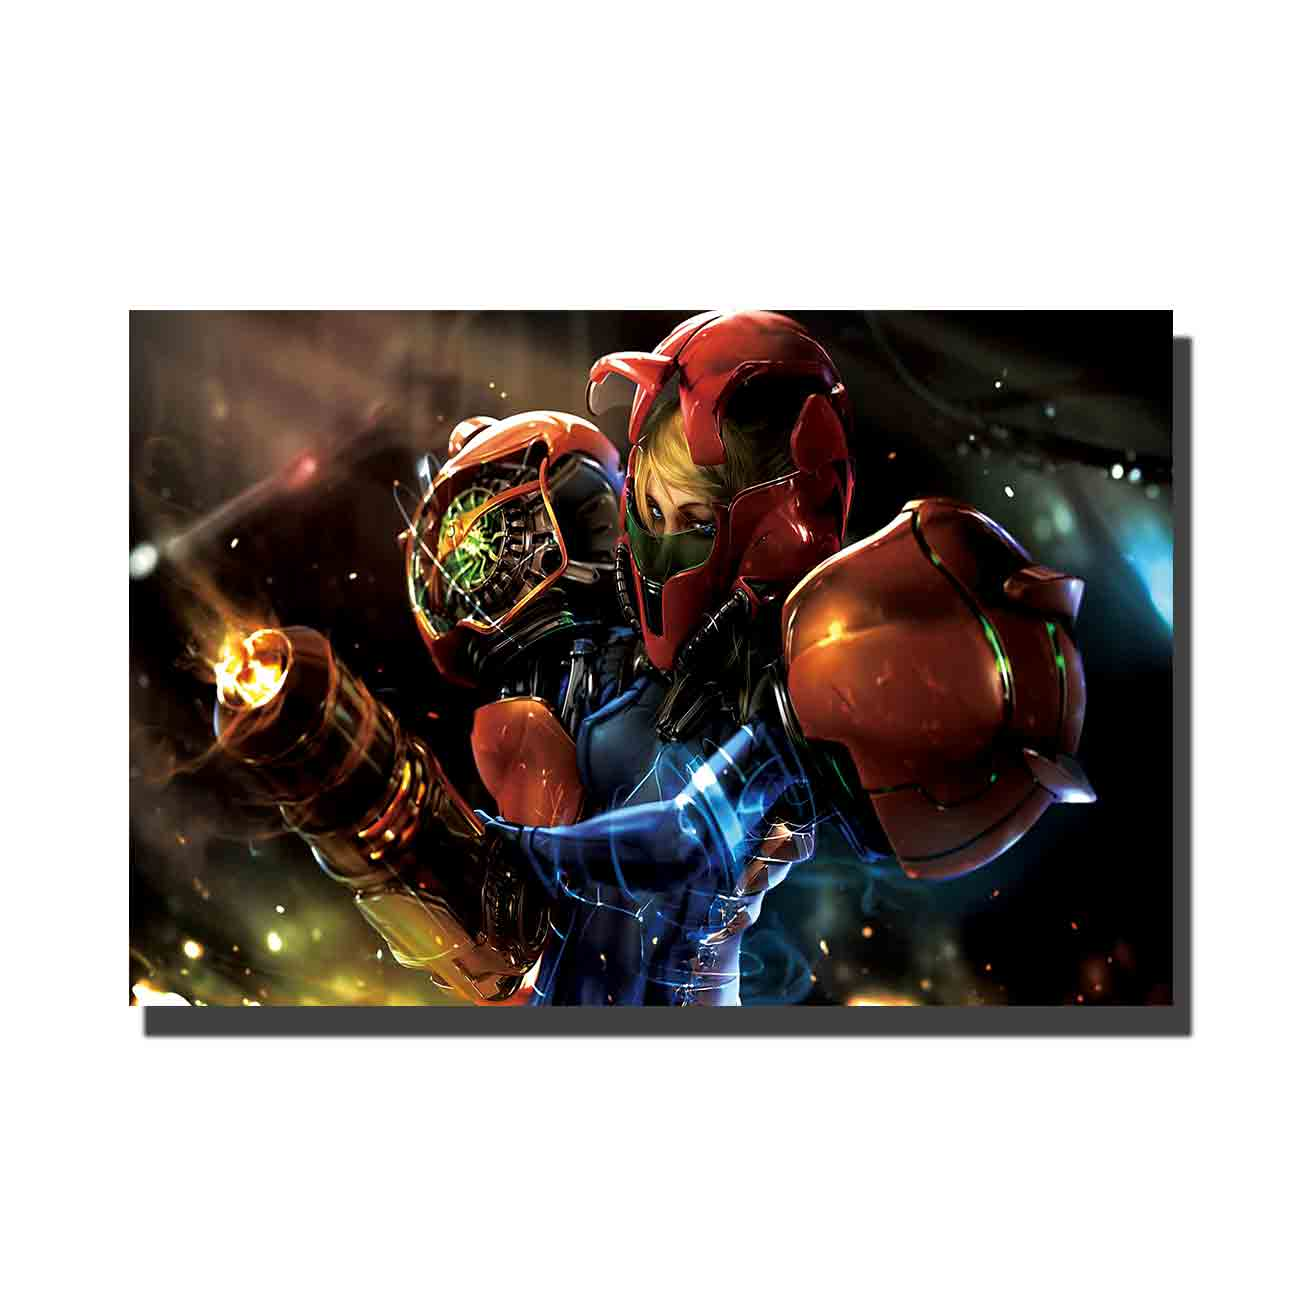 Metroid Game Fabric Cloth Art Poster custom Home Wall decor 8x12 27x40 24x36canvas living roomdecoration image